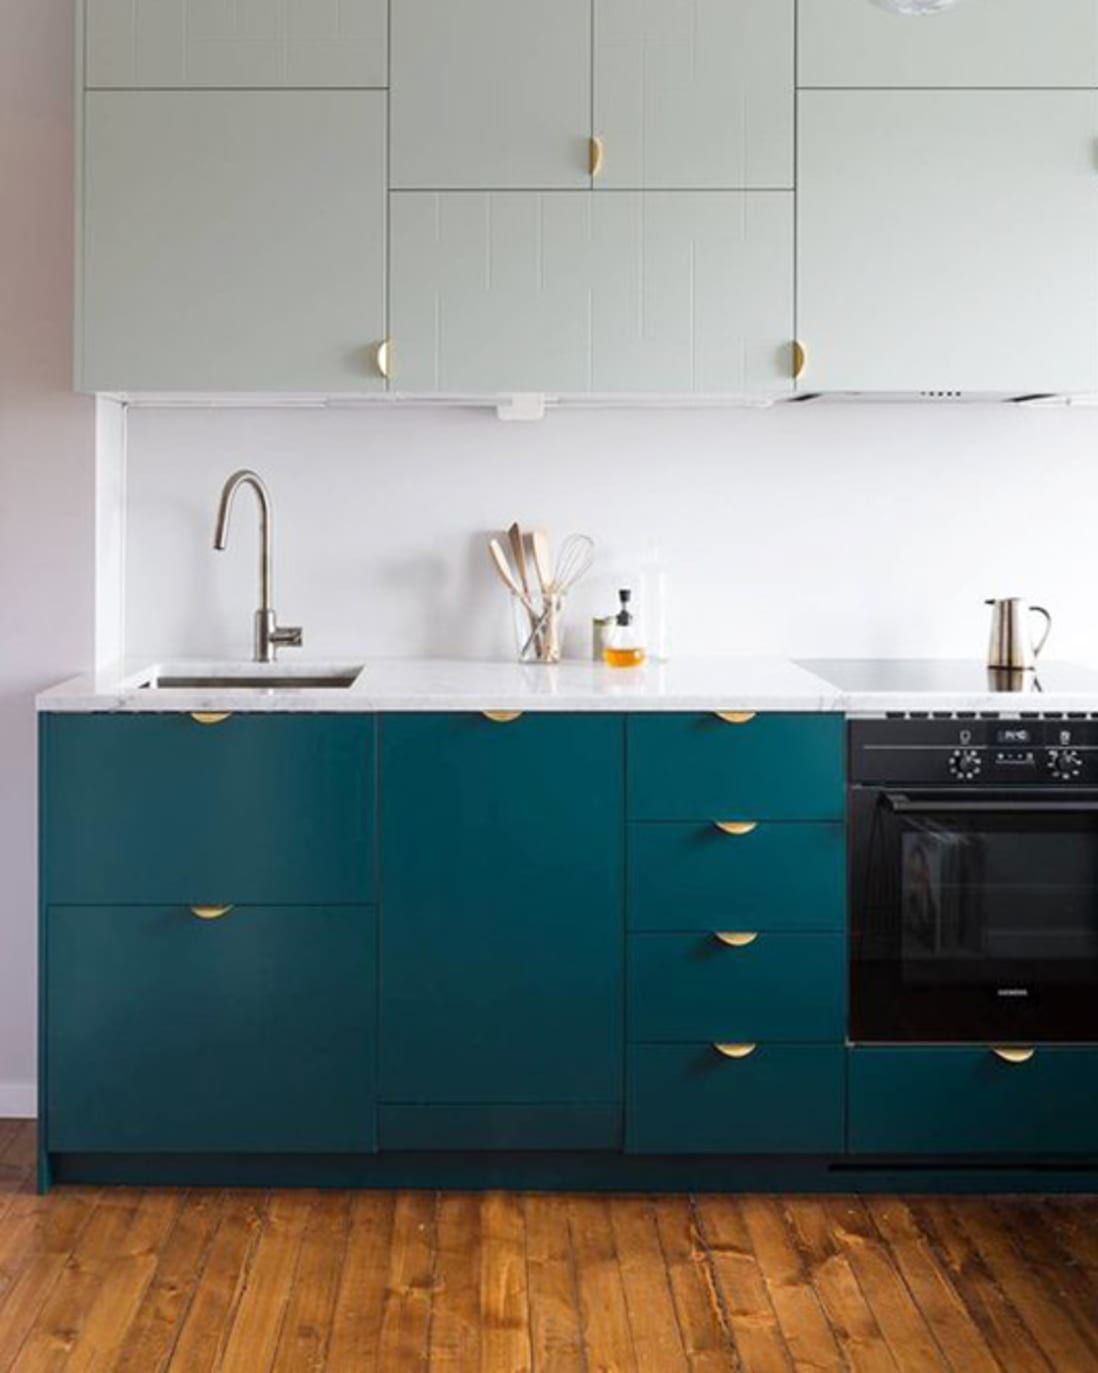 The Kitchen Cabinet Color I M Obsessed With In 2020 Kitchen Cabinets Color Combination Teal Kitchen Cabinets Modern Kitchen Design